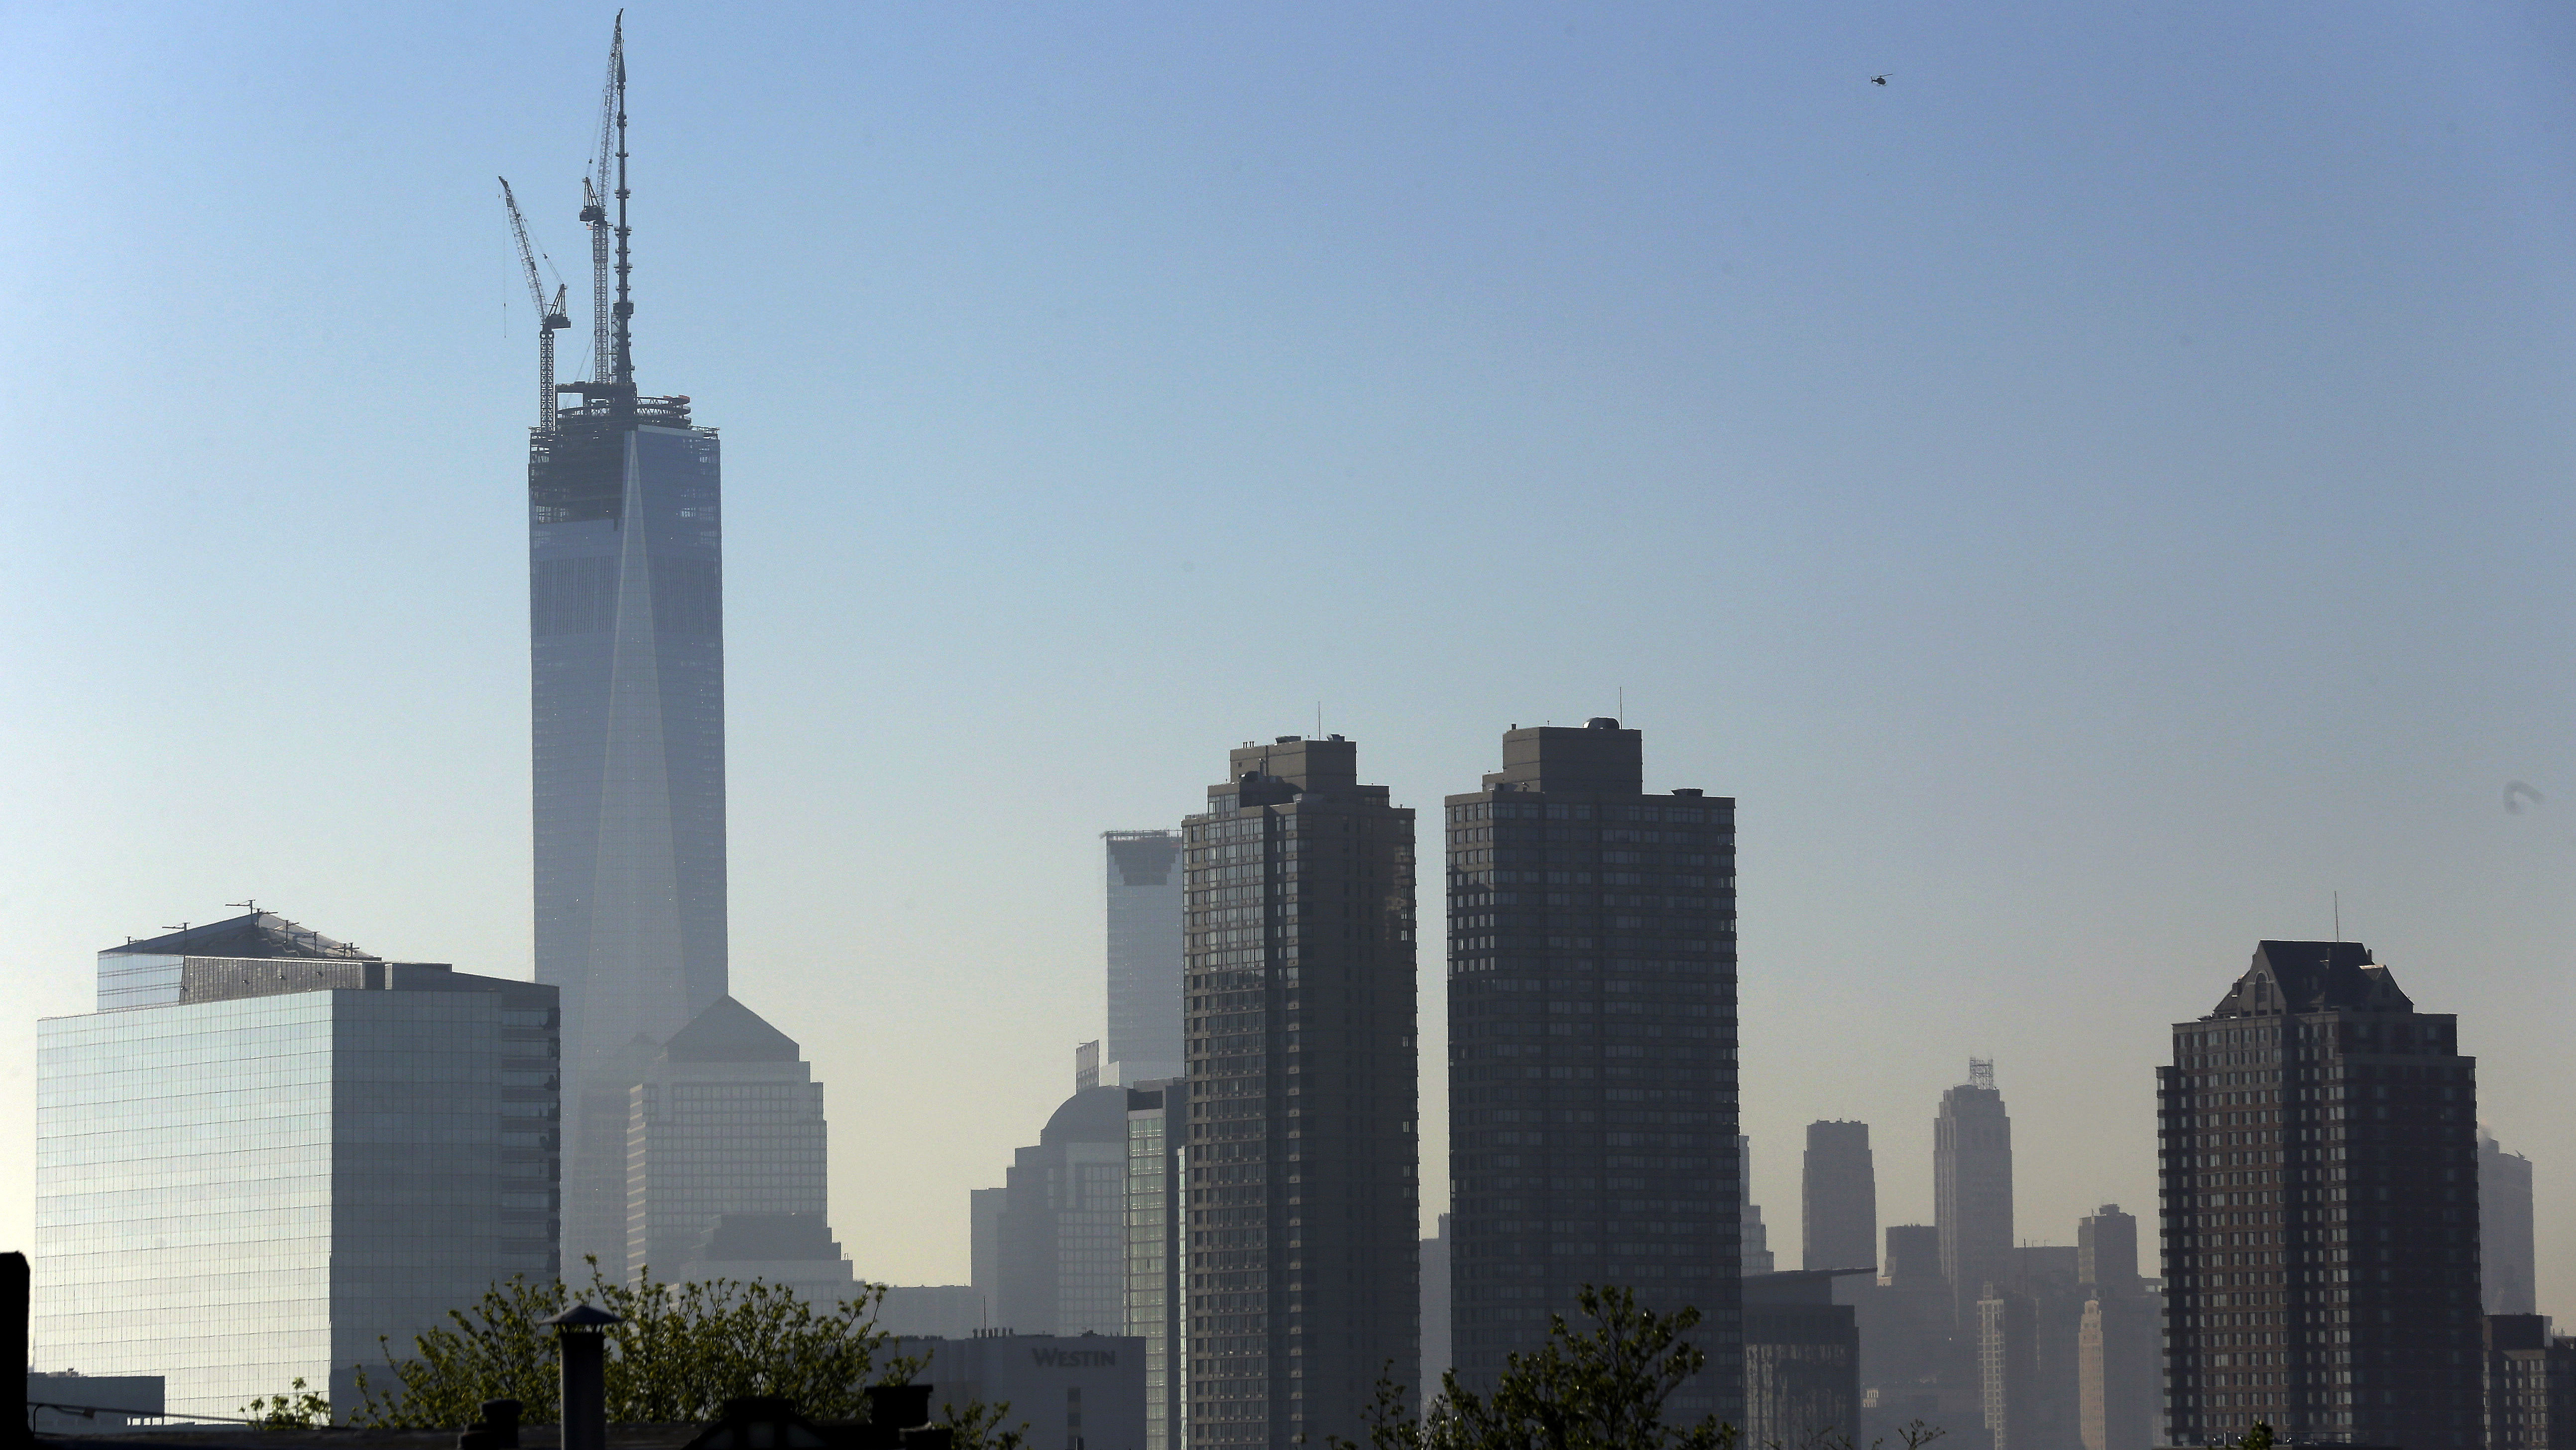 Spire Intact, World Trade Center Stretches To 1,776 Feet